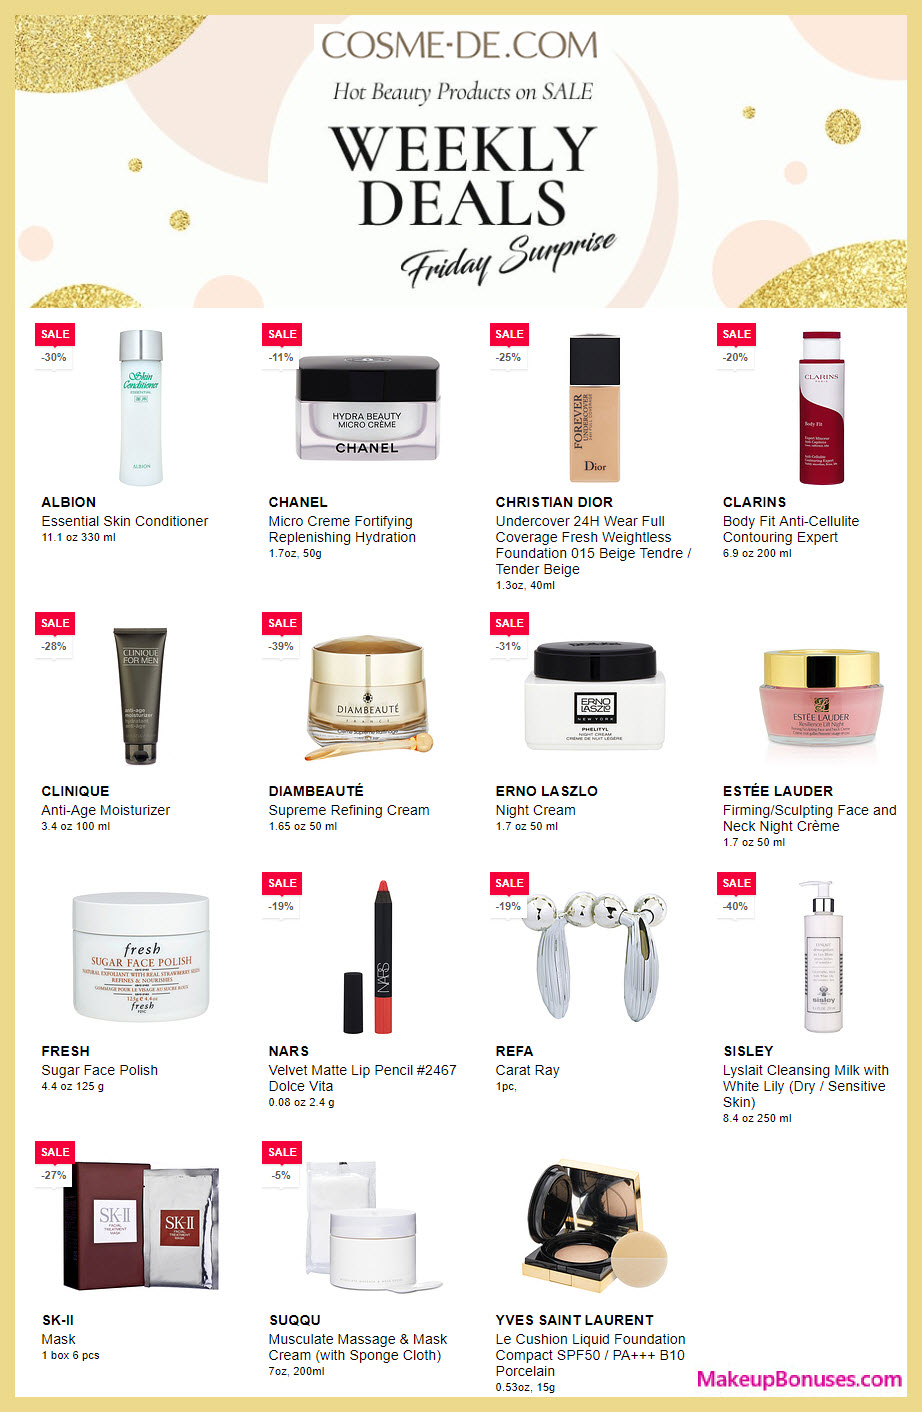 Cosme-De Weekly Specials on Luxe Beauty Brands #COSME.DE #cosmede #cosme_de #MakeupBonuses